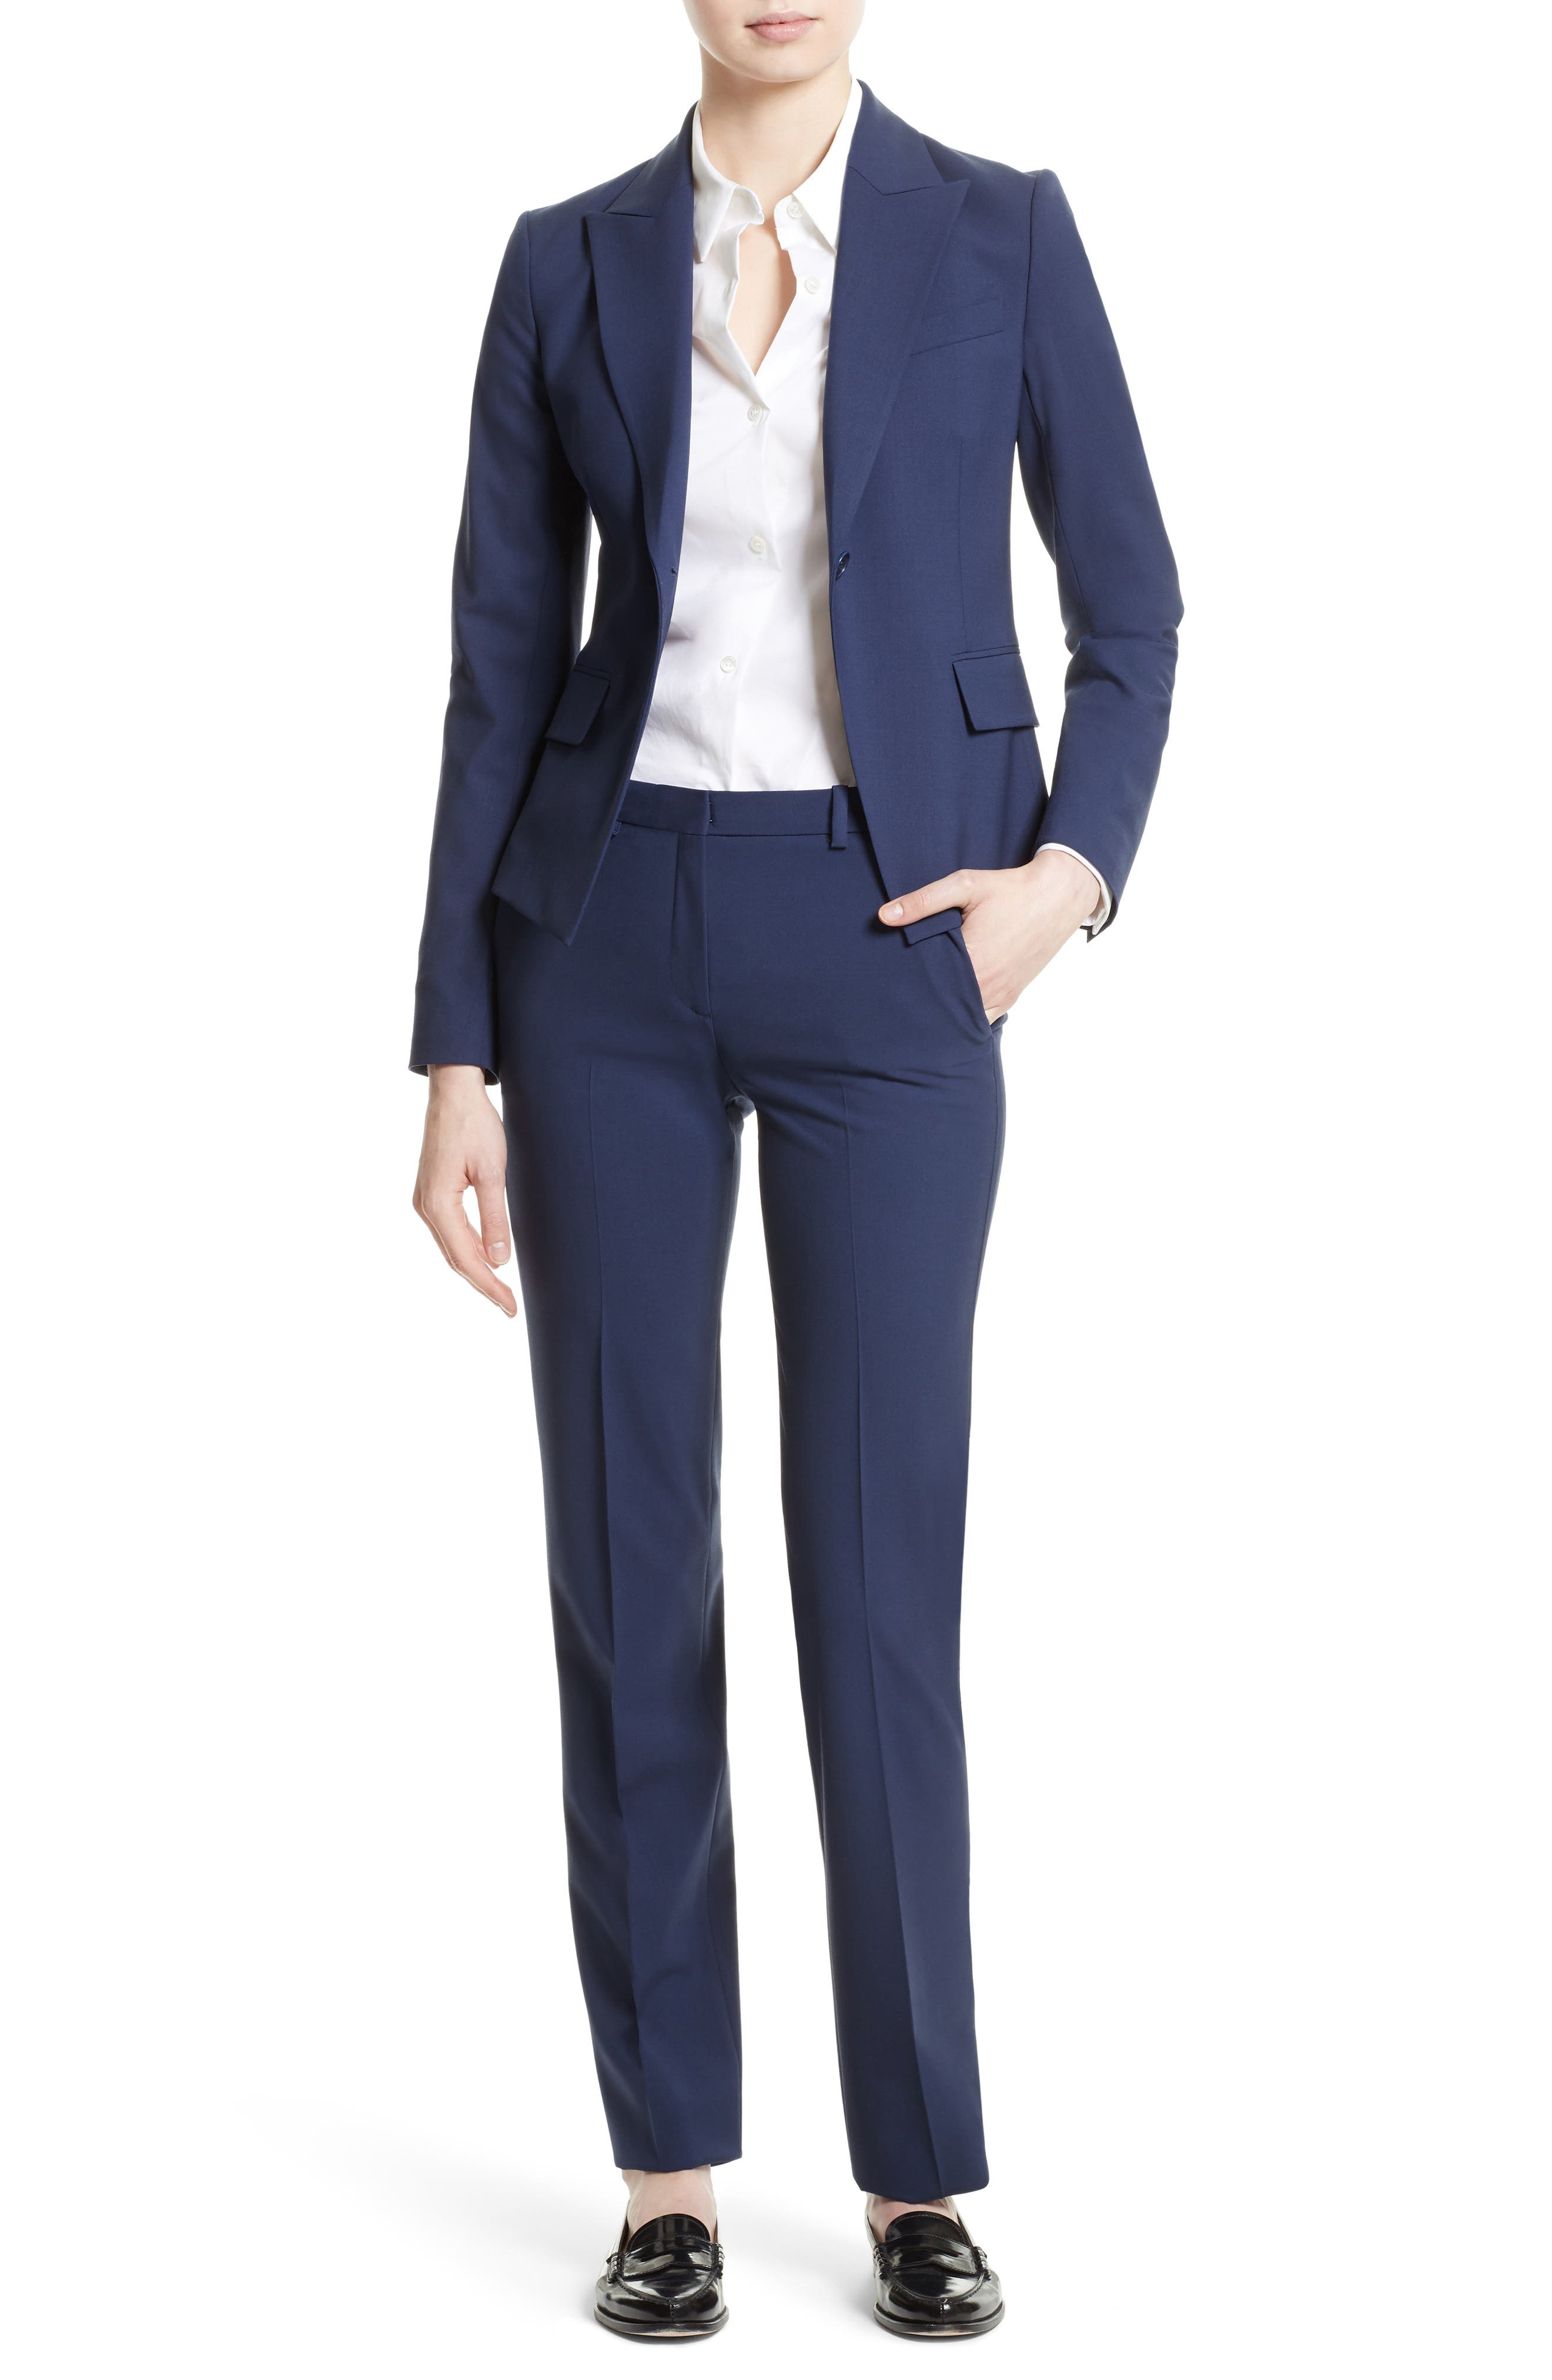 Theory Jacket & Pants Outfit with Accessories